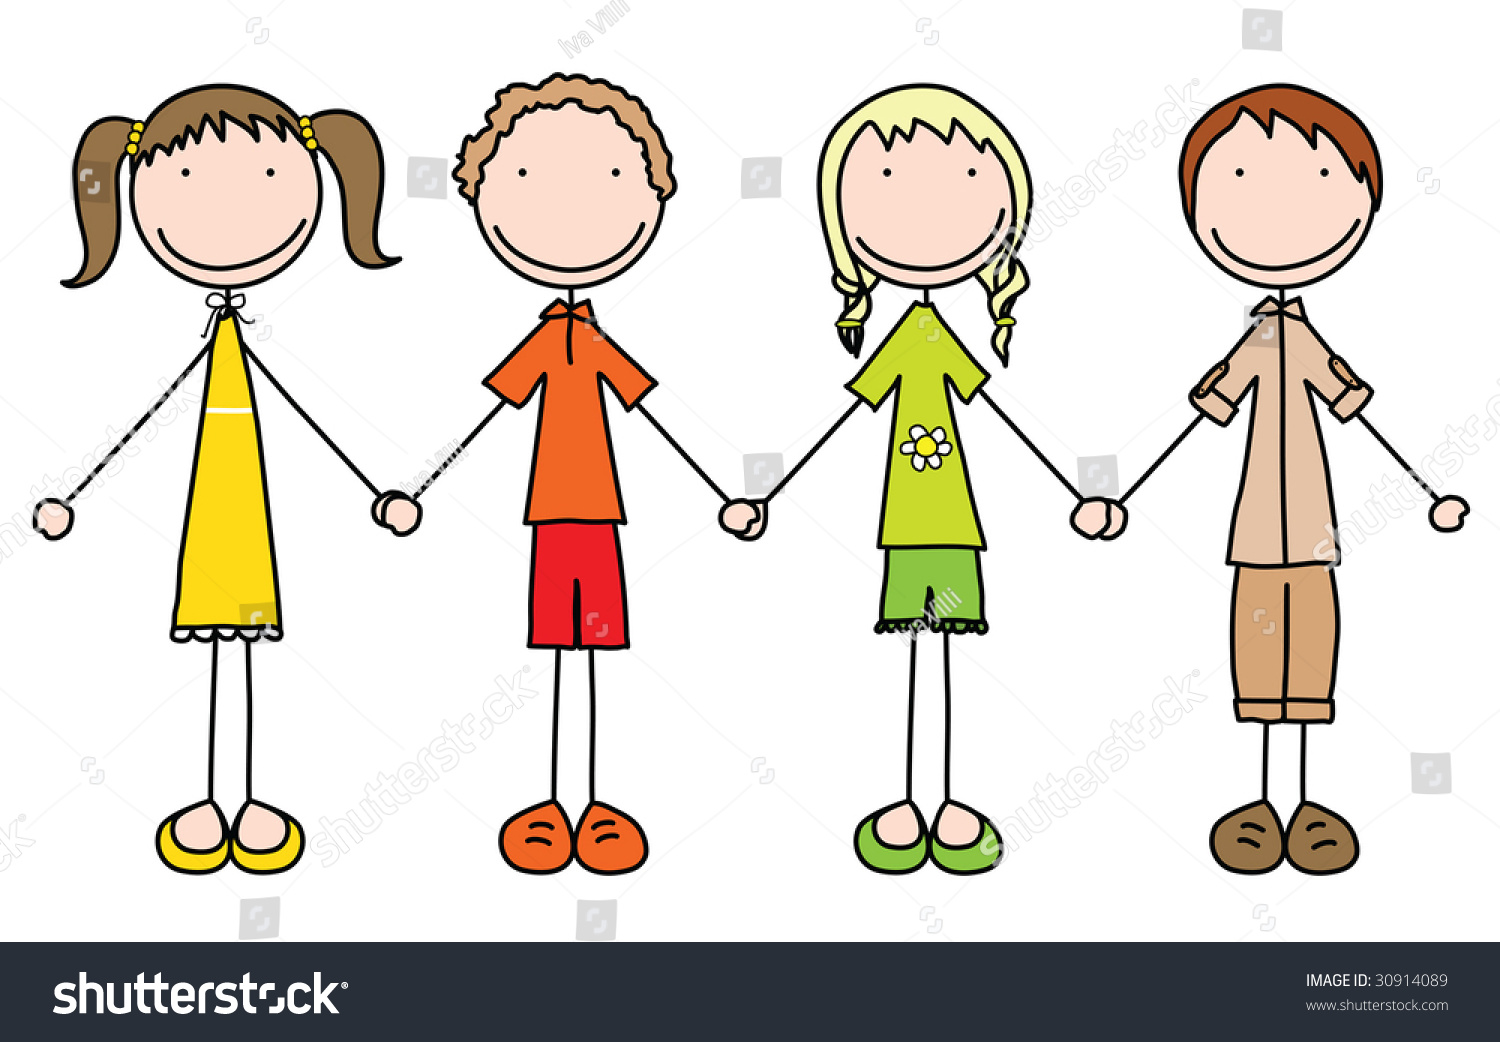 Illustration Of Four Kids Holding Hands In Summer Clothes